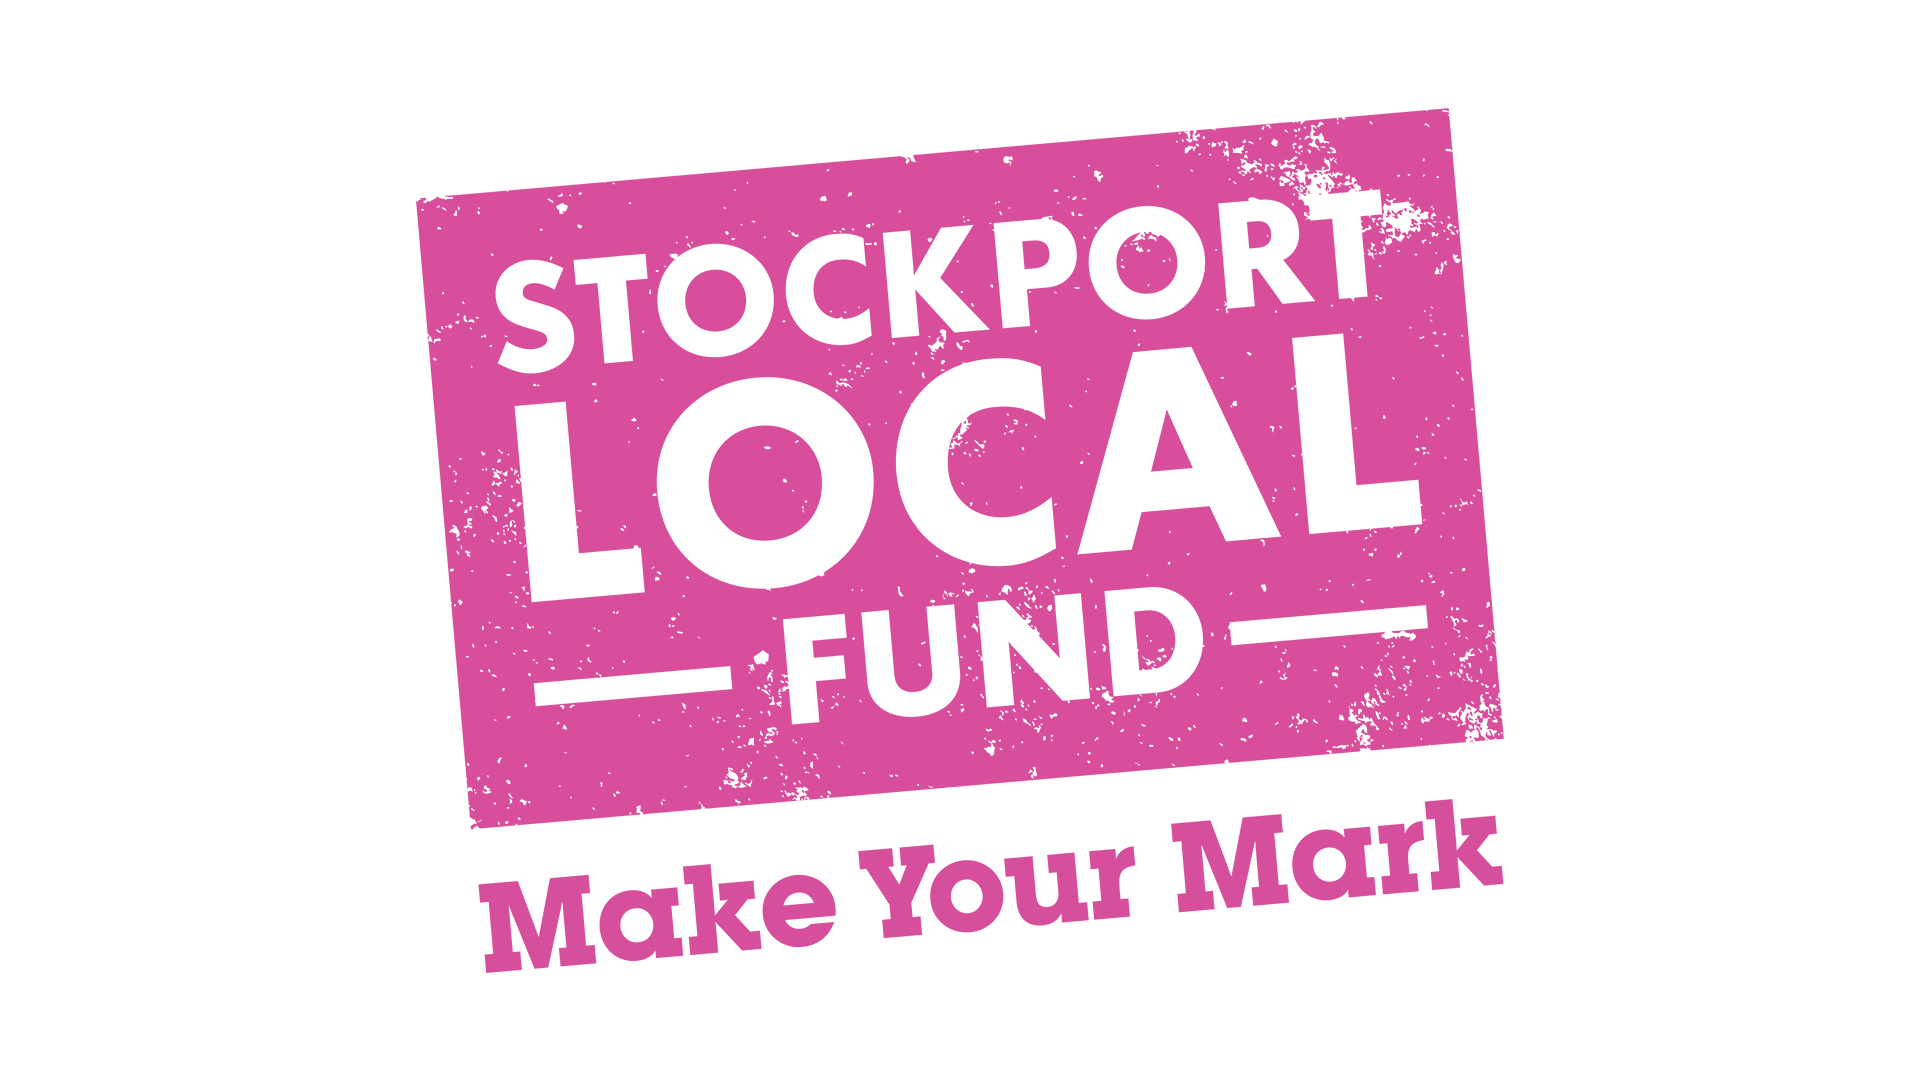 More successful applications for Stockport Local Fund announced